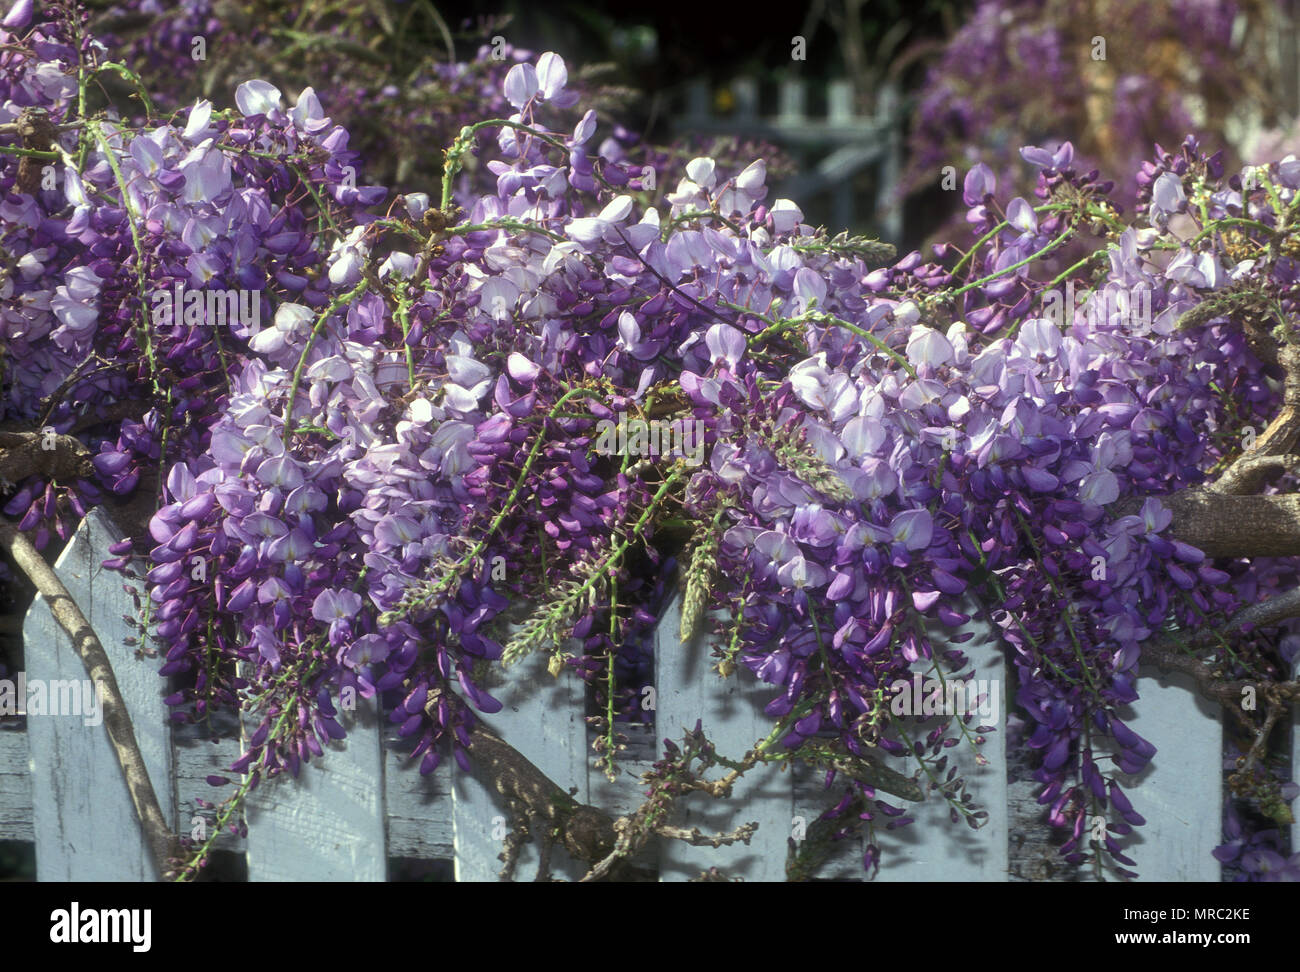 WISTERIA GROWING OVER OLD WHITE TIMBER PICKET FENCE - Stock Image